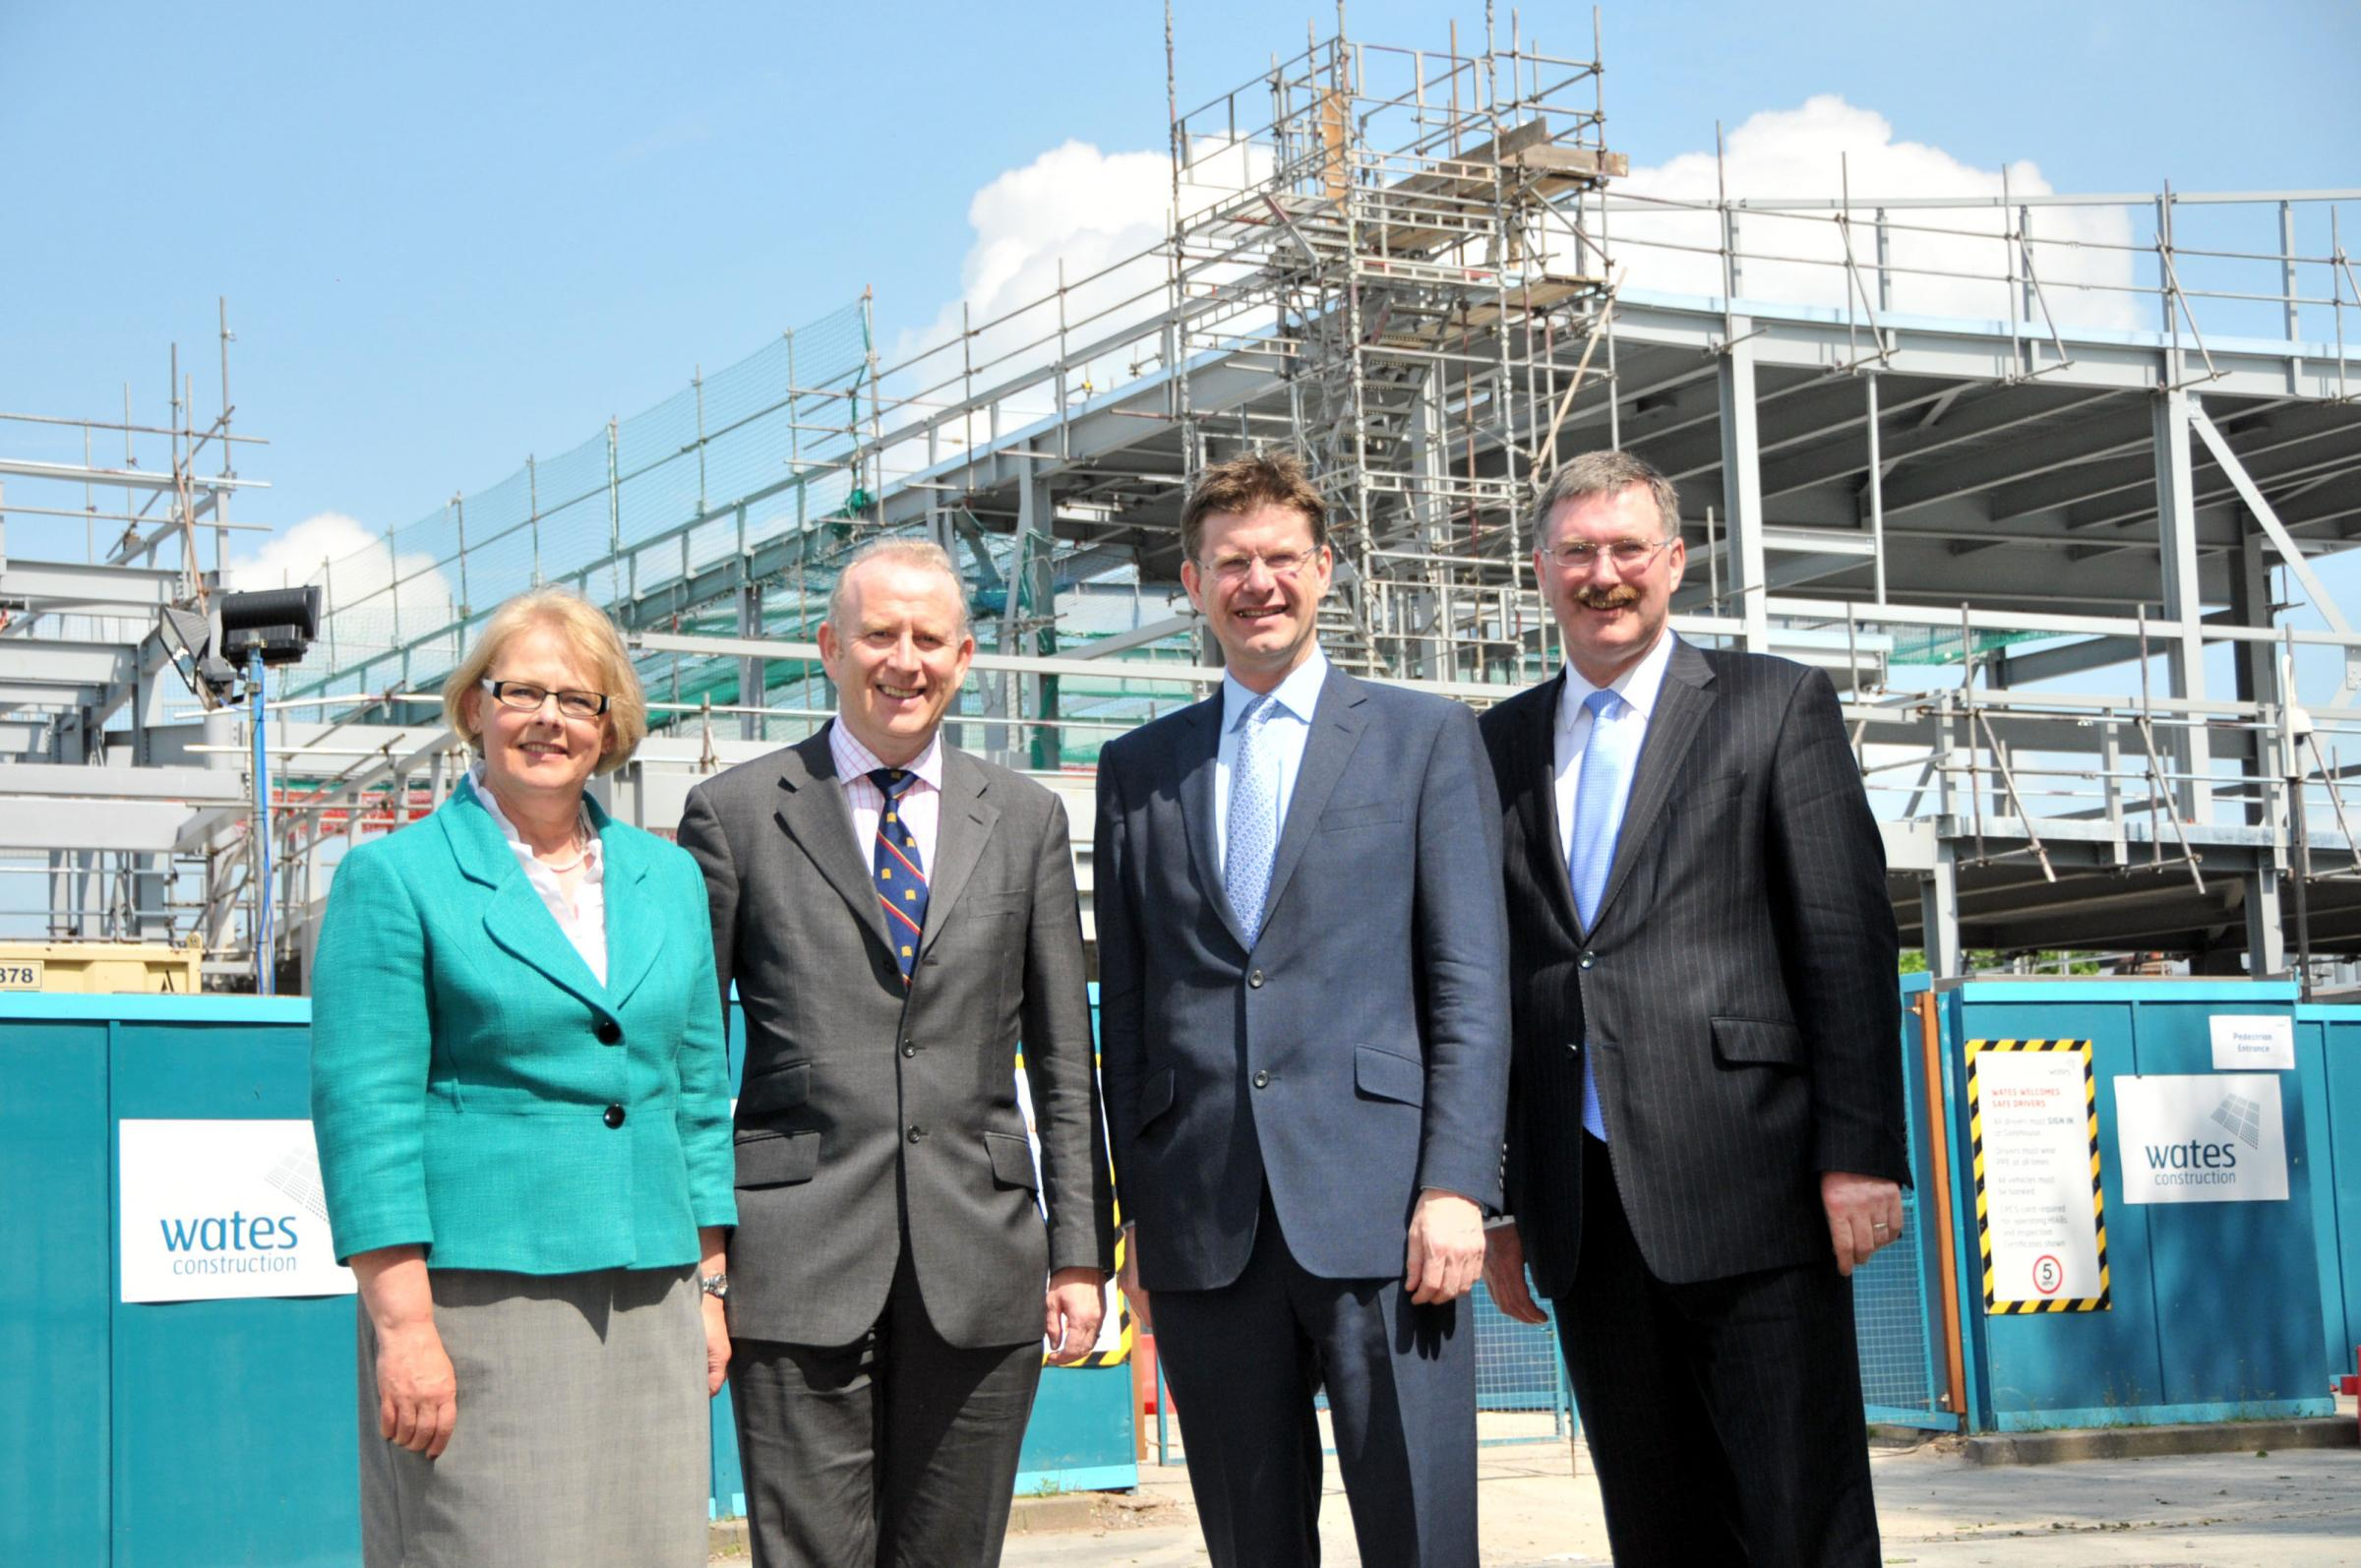 Clr Eveleigh Moore Dutton, deputy leader of Cheshire West and Chester Council (CWAC), Weaver Vale MP Graham Evans, Greg Clark, Minister for Cities and Constitution, and Clr Mike Jones, CWAC leader.